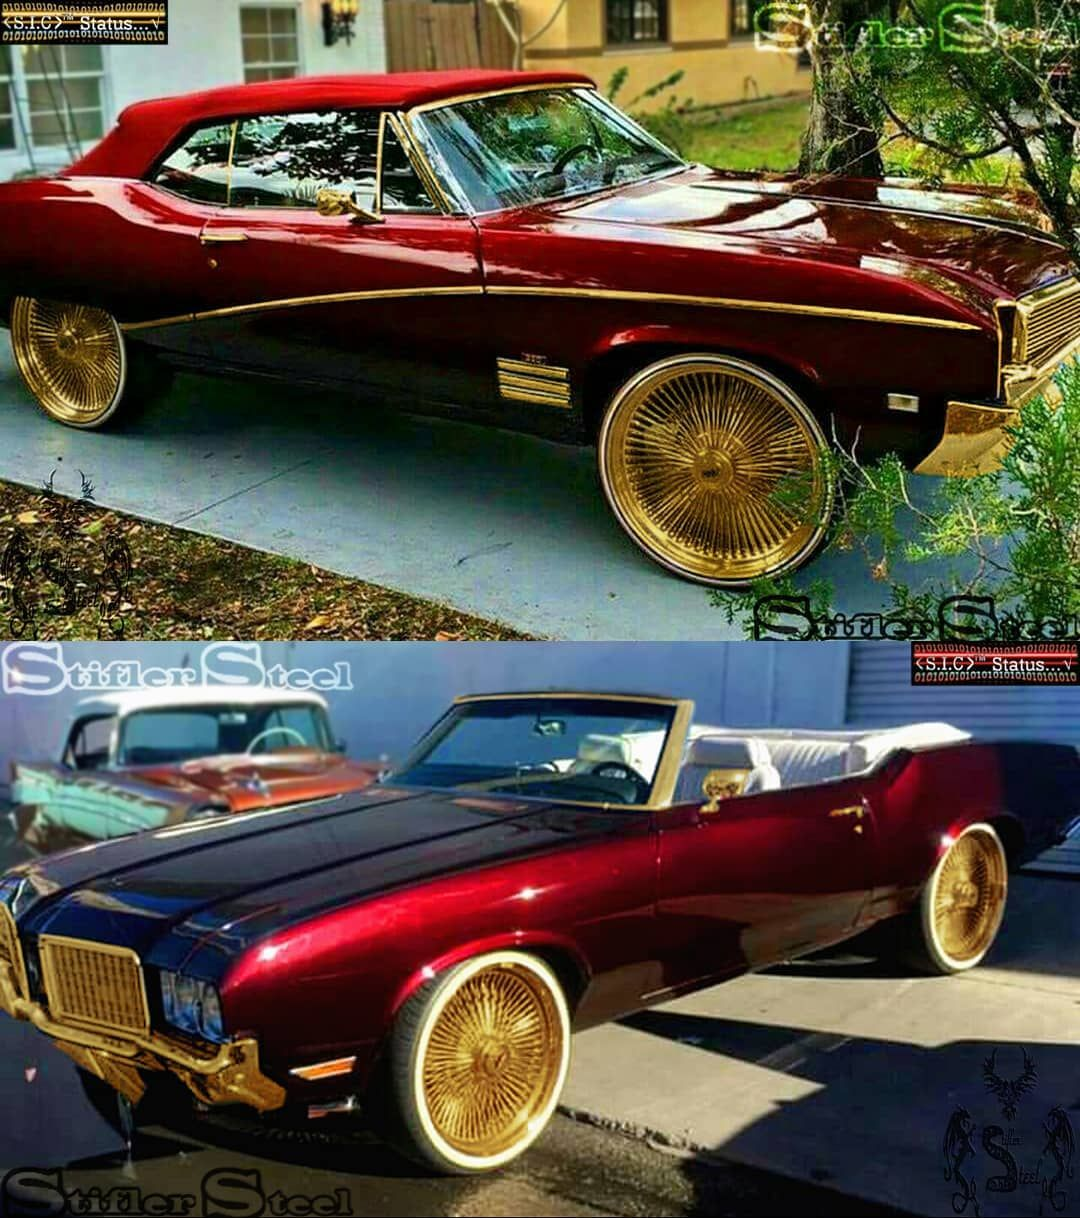 Pin By Mdbthegod On Fire Chevy Girl Custom Cars Chevy Impala